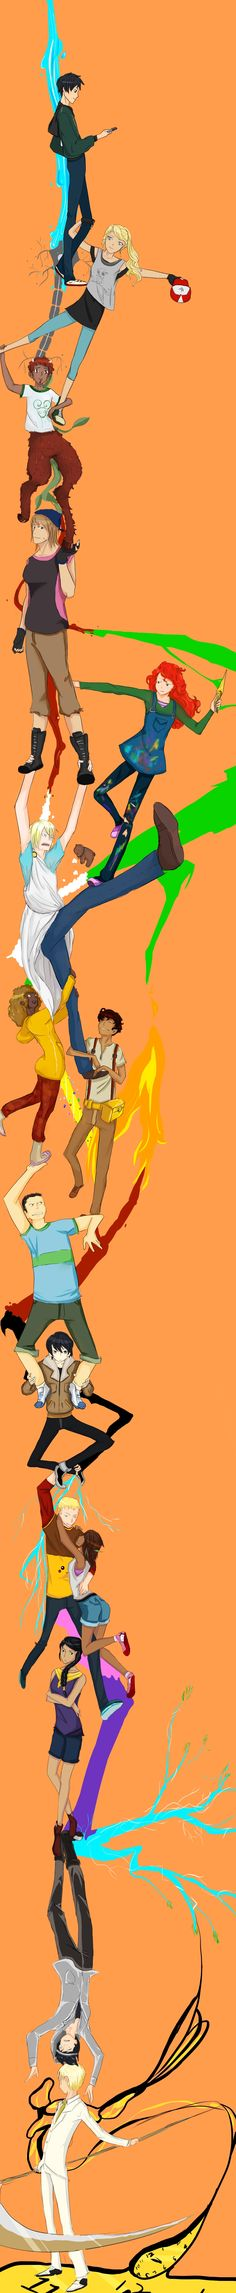 http://neaveria.deviantart.com/art/PJO-HoO-Trust-Me-394665528 Wicked. I LOVE THIS SO MUCH